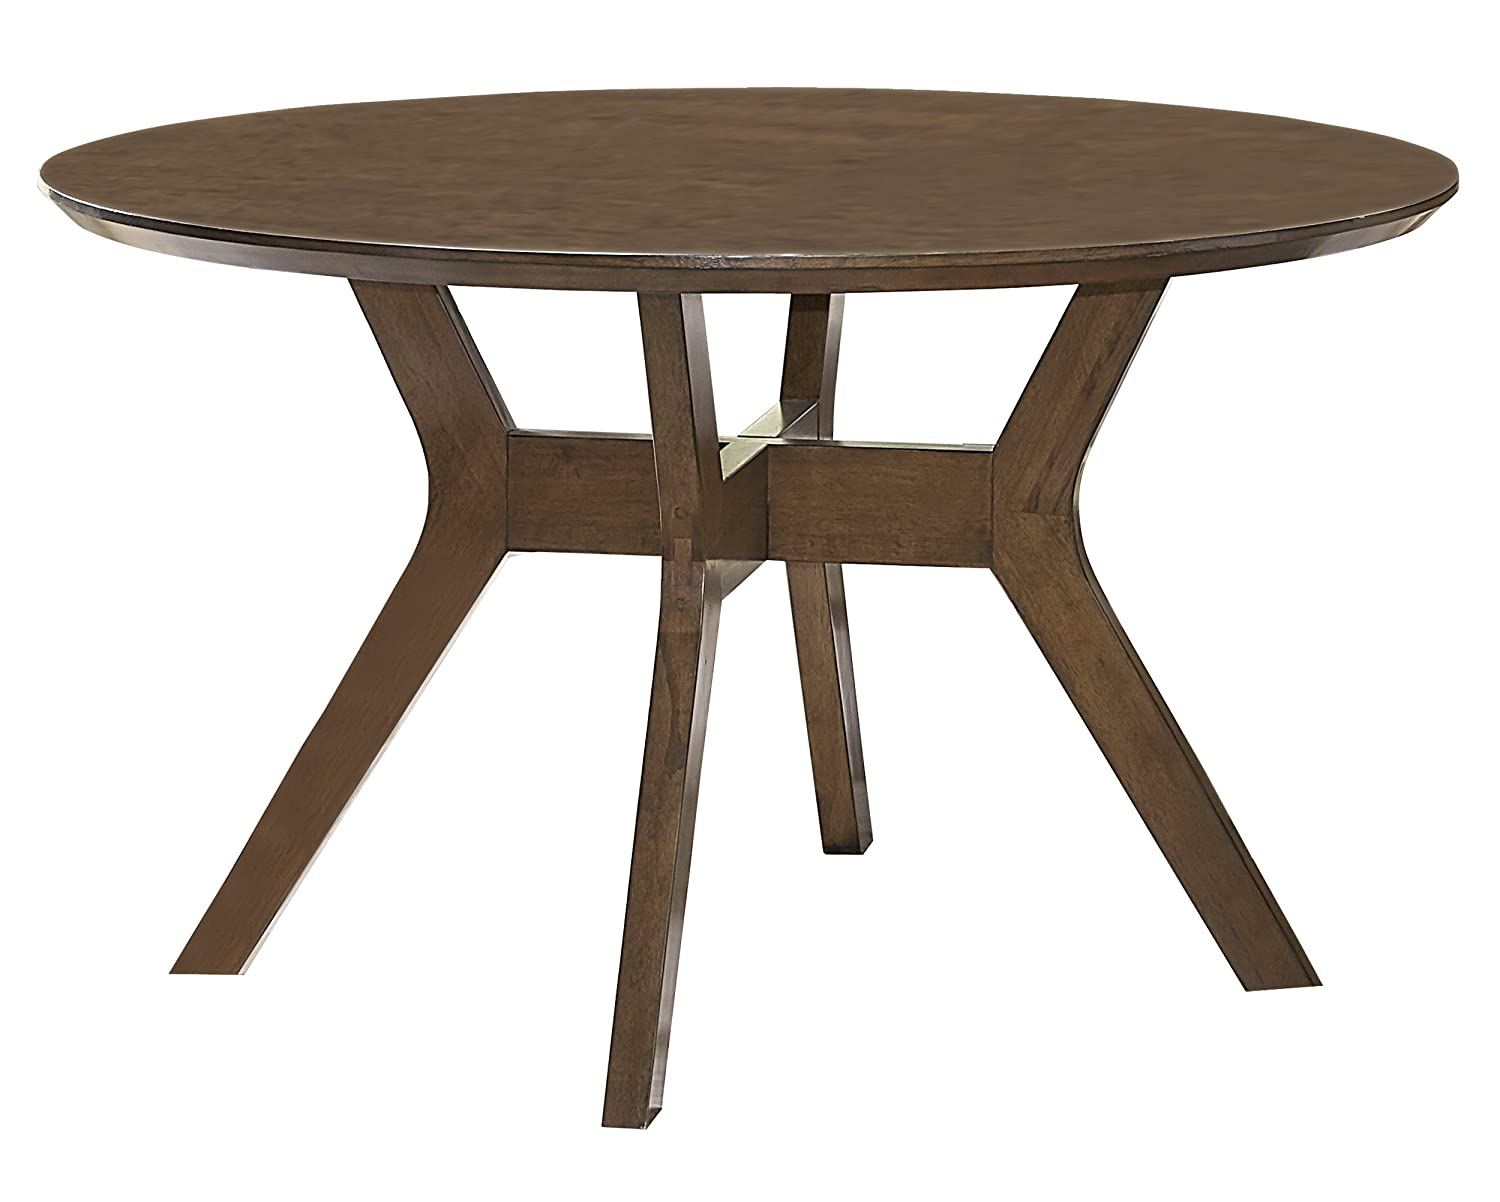 52 Round Table.Homelegance Edam 52 Round Dining Table Oak